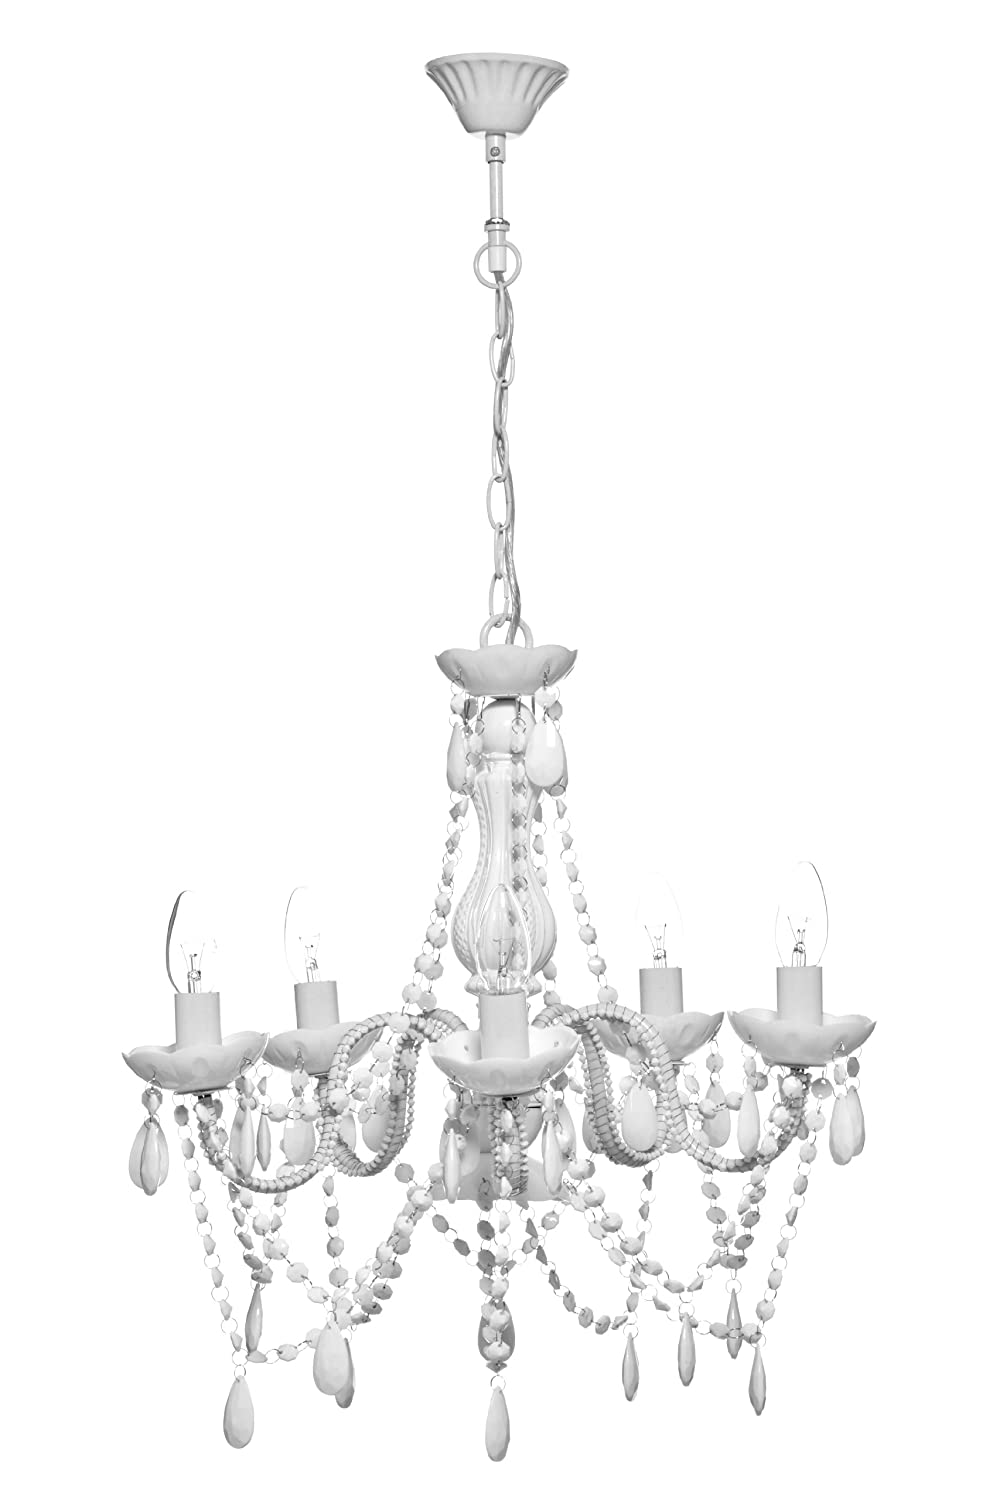 Premier housewares 5 arm white chandelier with acrylic beads premier housewares 5 arm white chandelier with acrylic beads amazon lighting arubaitofo Image collections